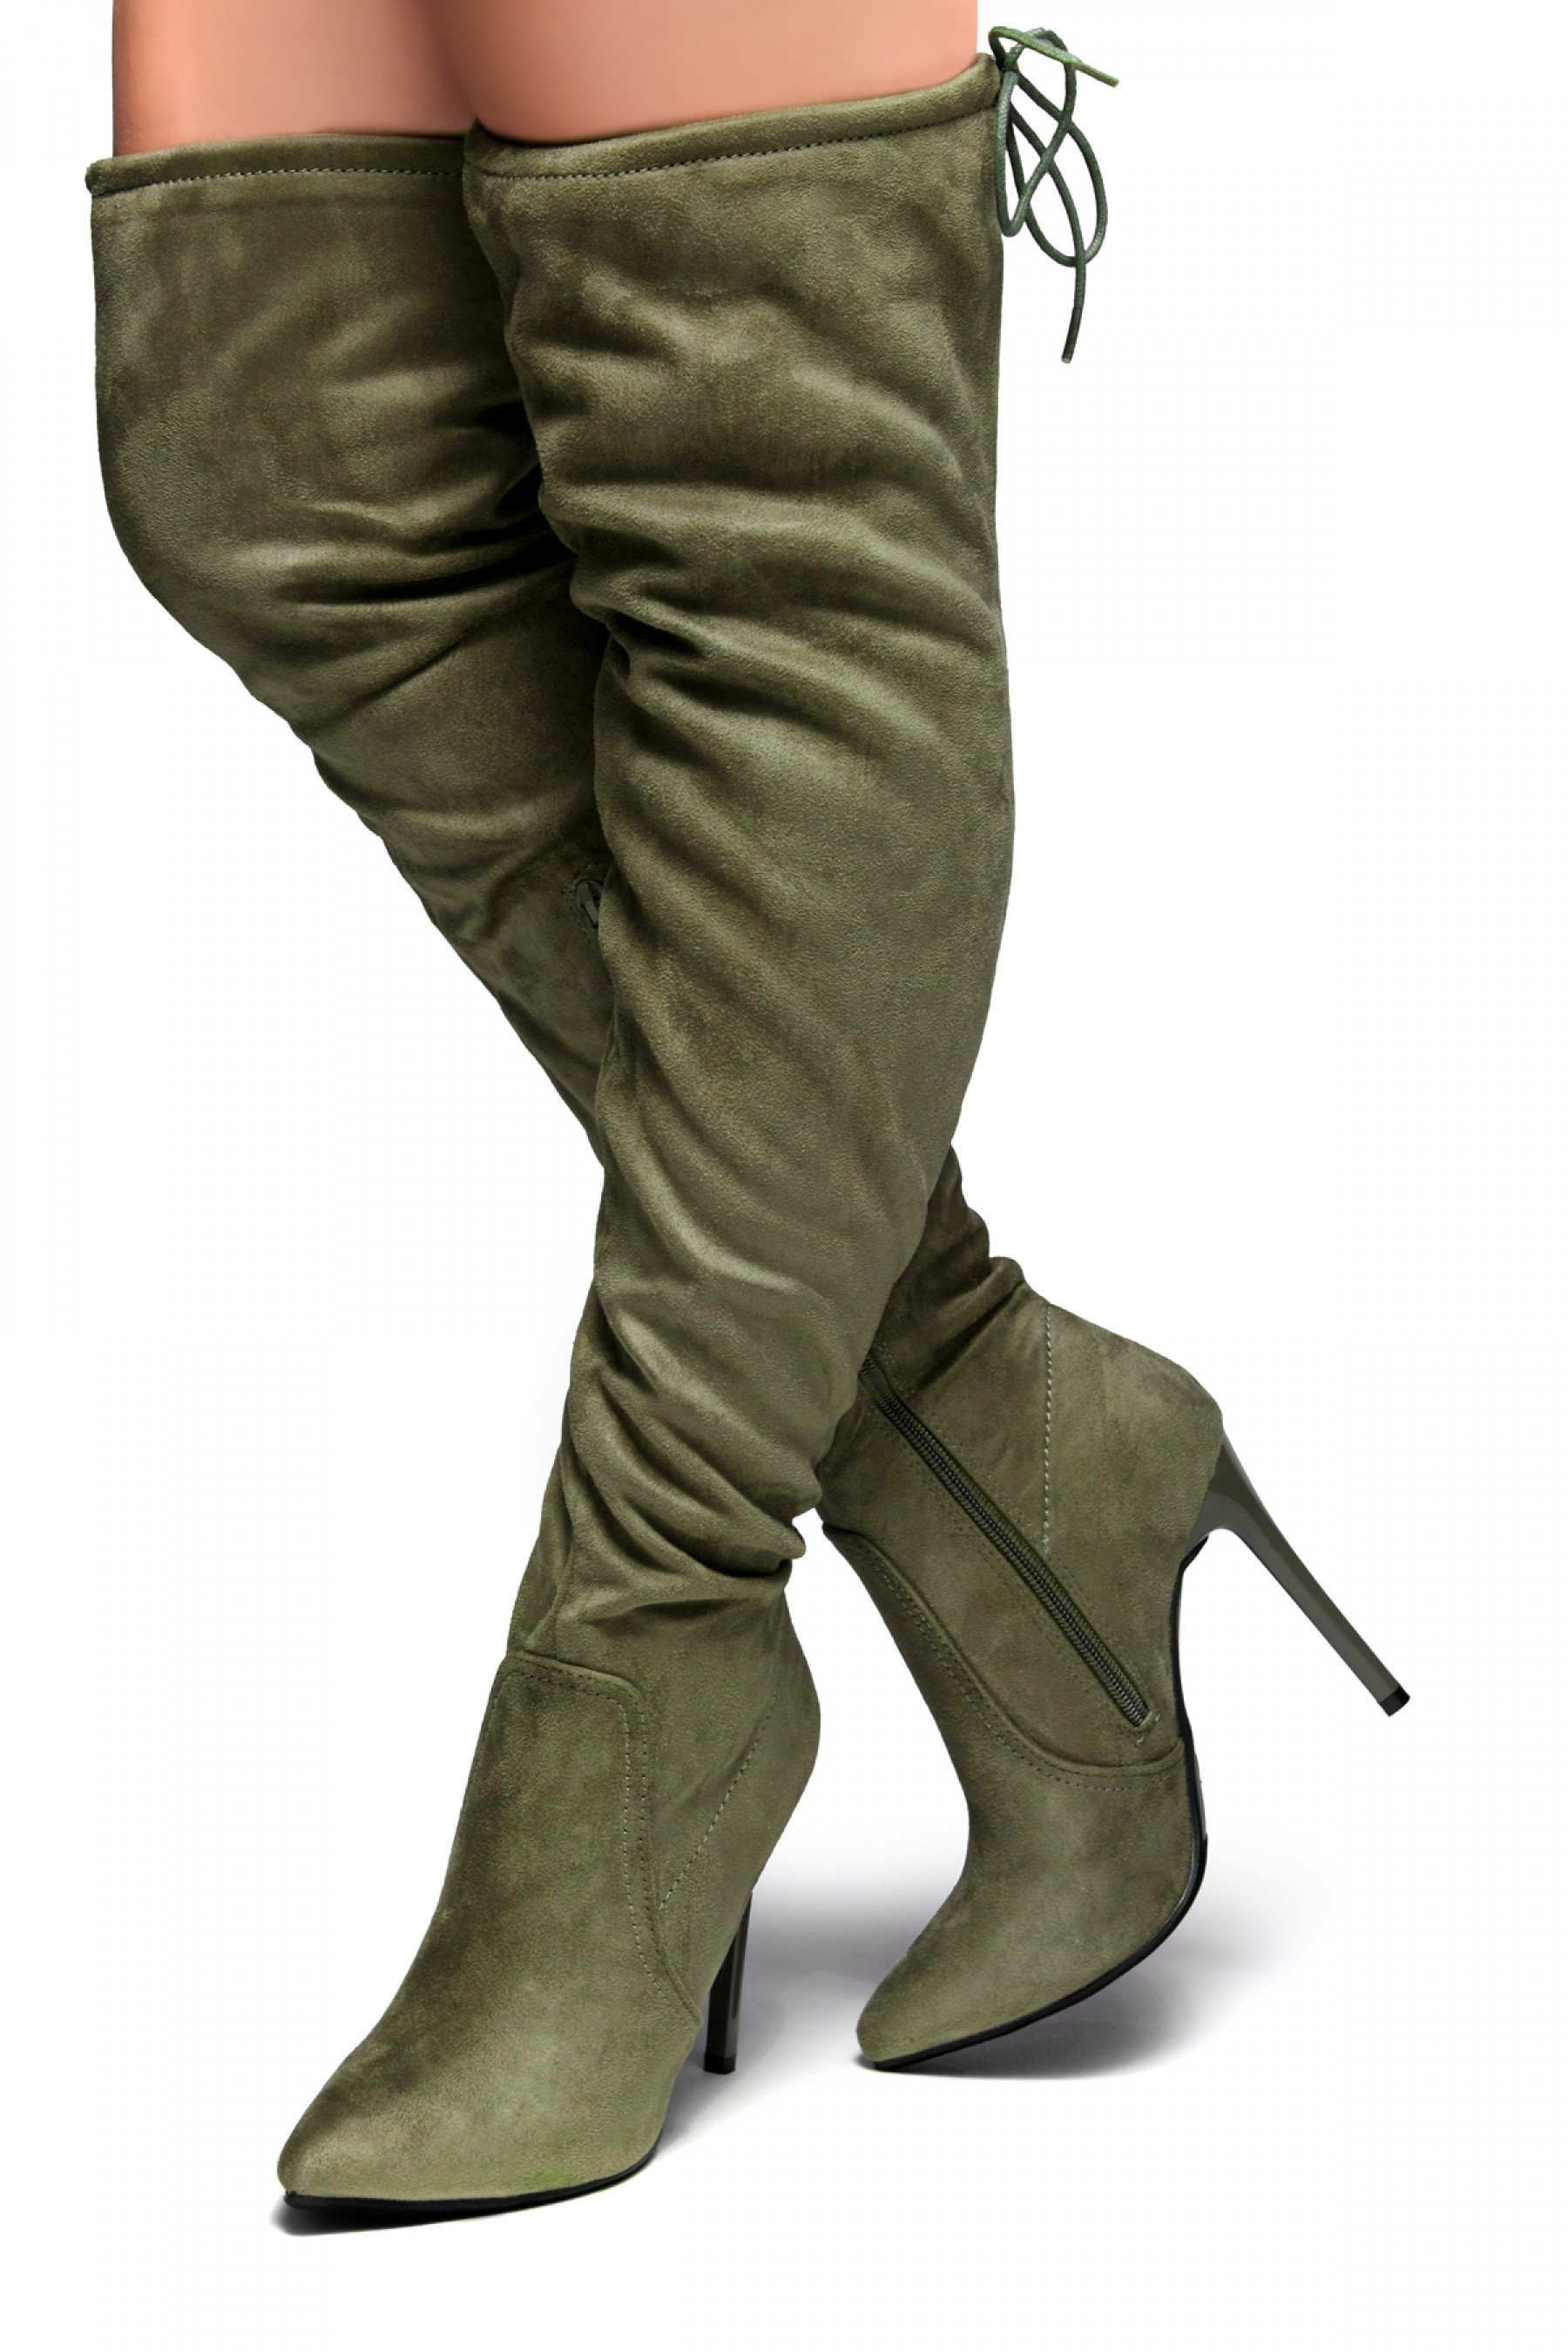 Women's Megann Faux Suede Over The Knee , thigh hi Pointy Toe Boots - Olive